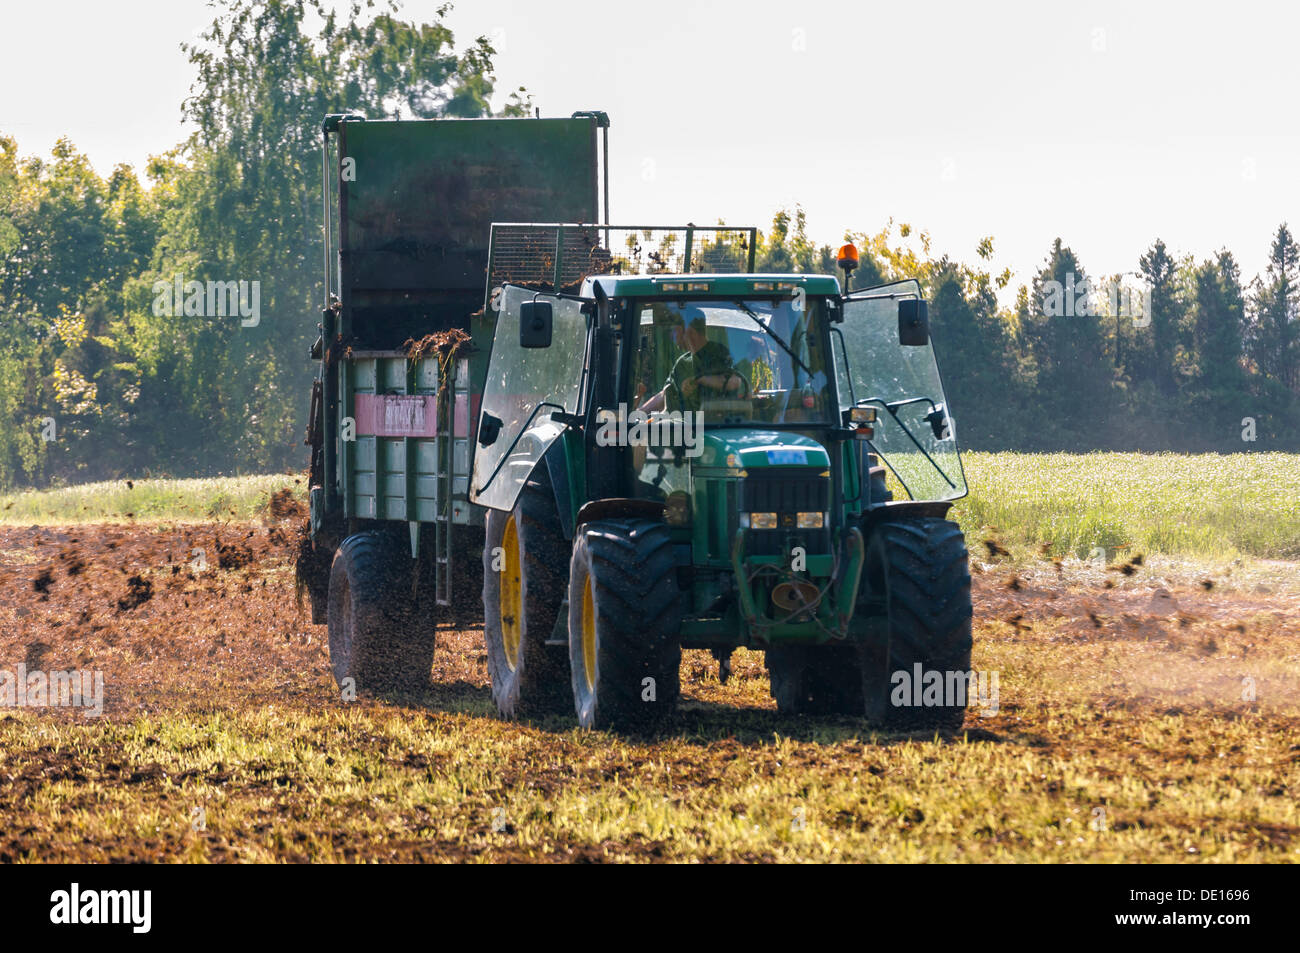 Working Manure Spreader : Spreader stock photos images alamy